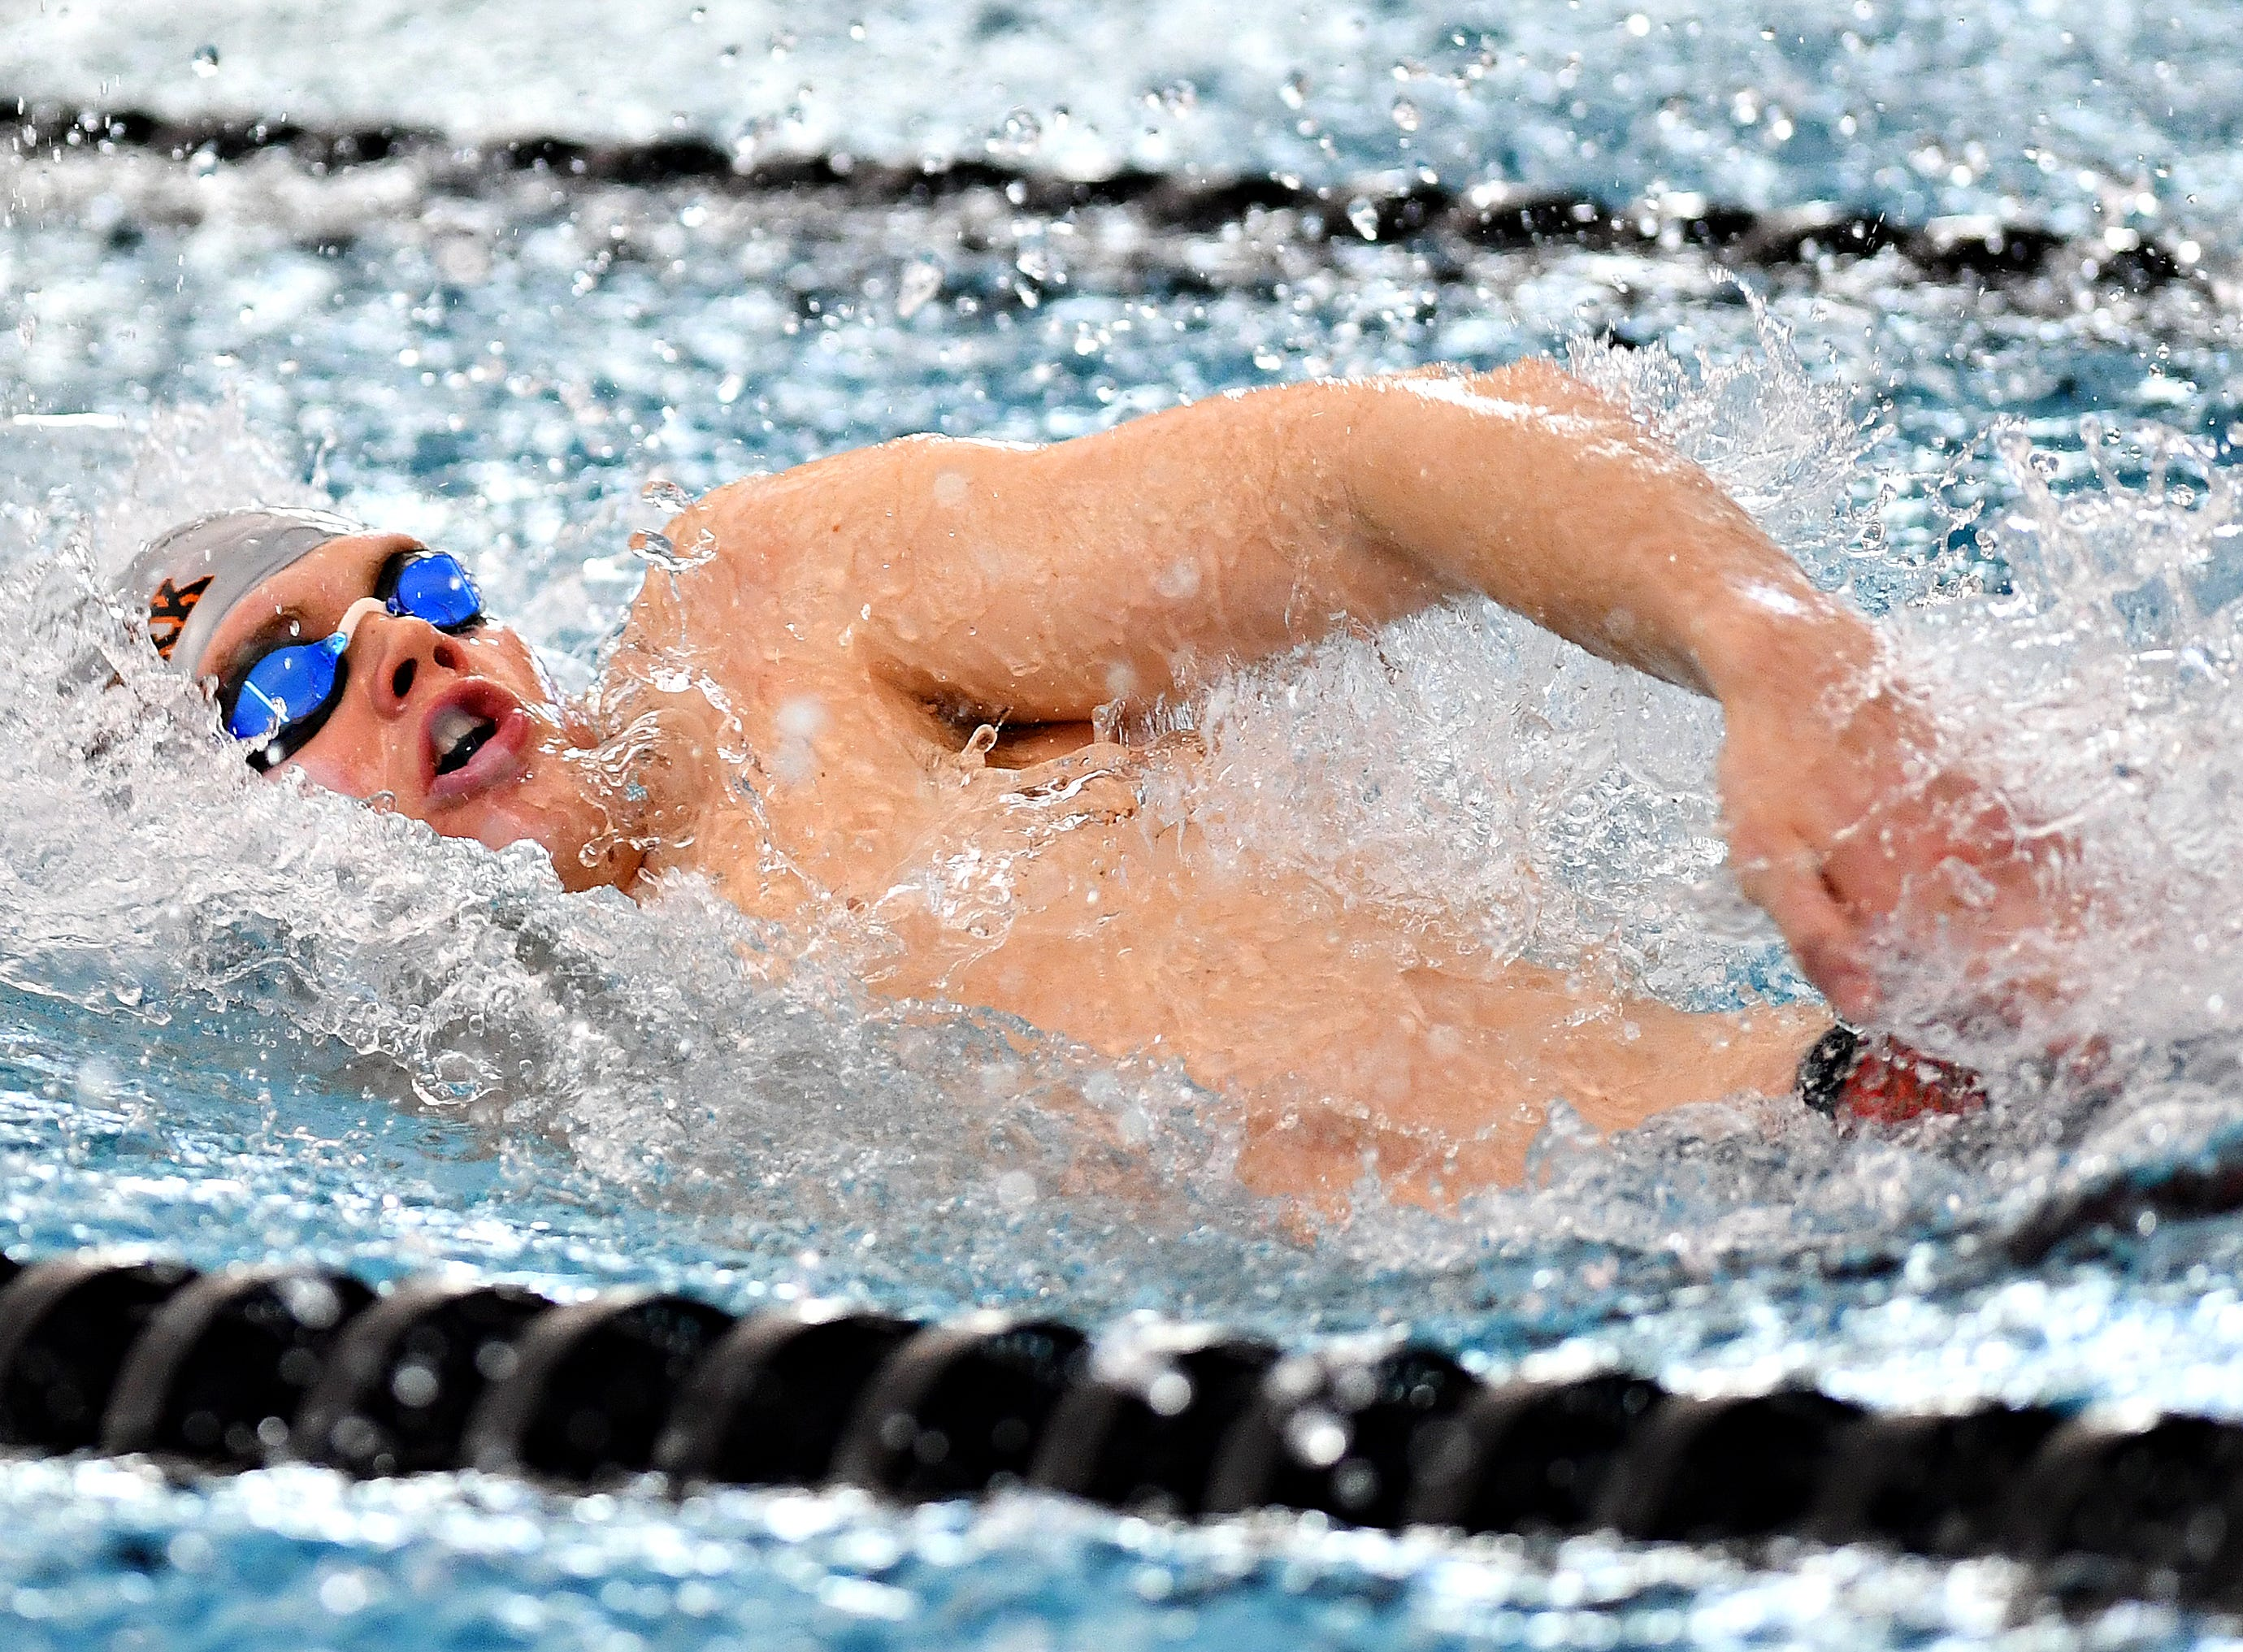 Central York's Jared Hicks competes in the 100 Yard Backstroke event during the York-Adams League Swimming Championship at Central York High School in Springettsbury Township, Saturday, Feb. 9, 2019. Dawn J. Sagert photo